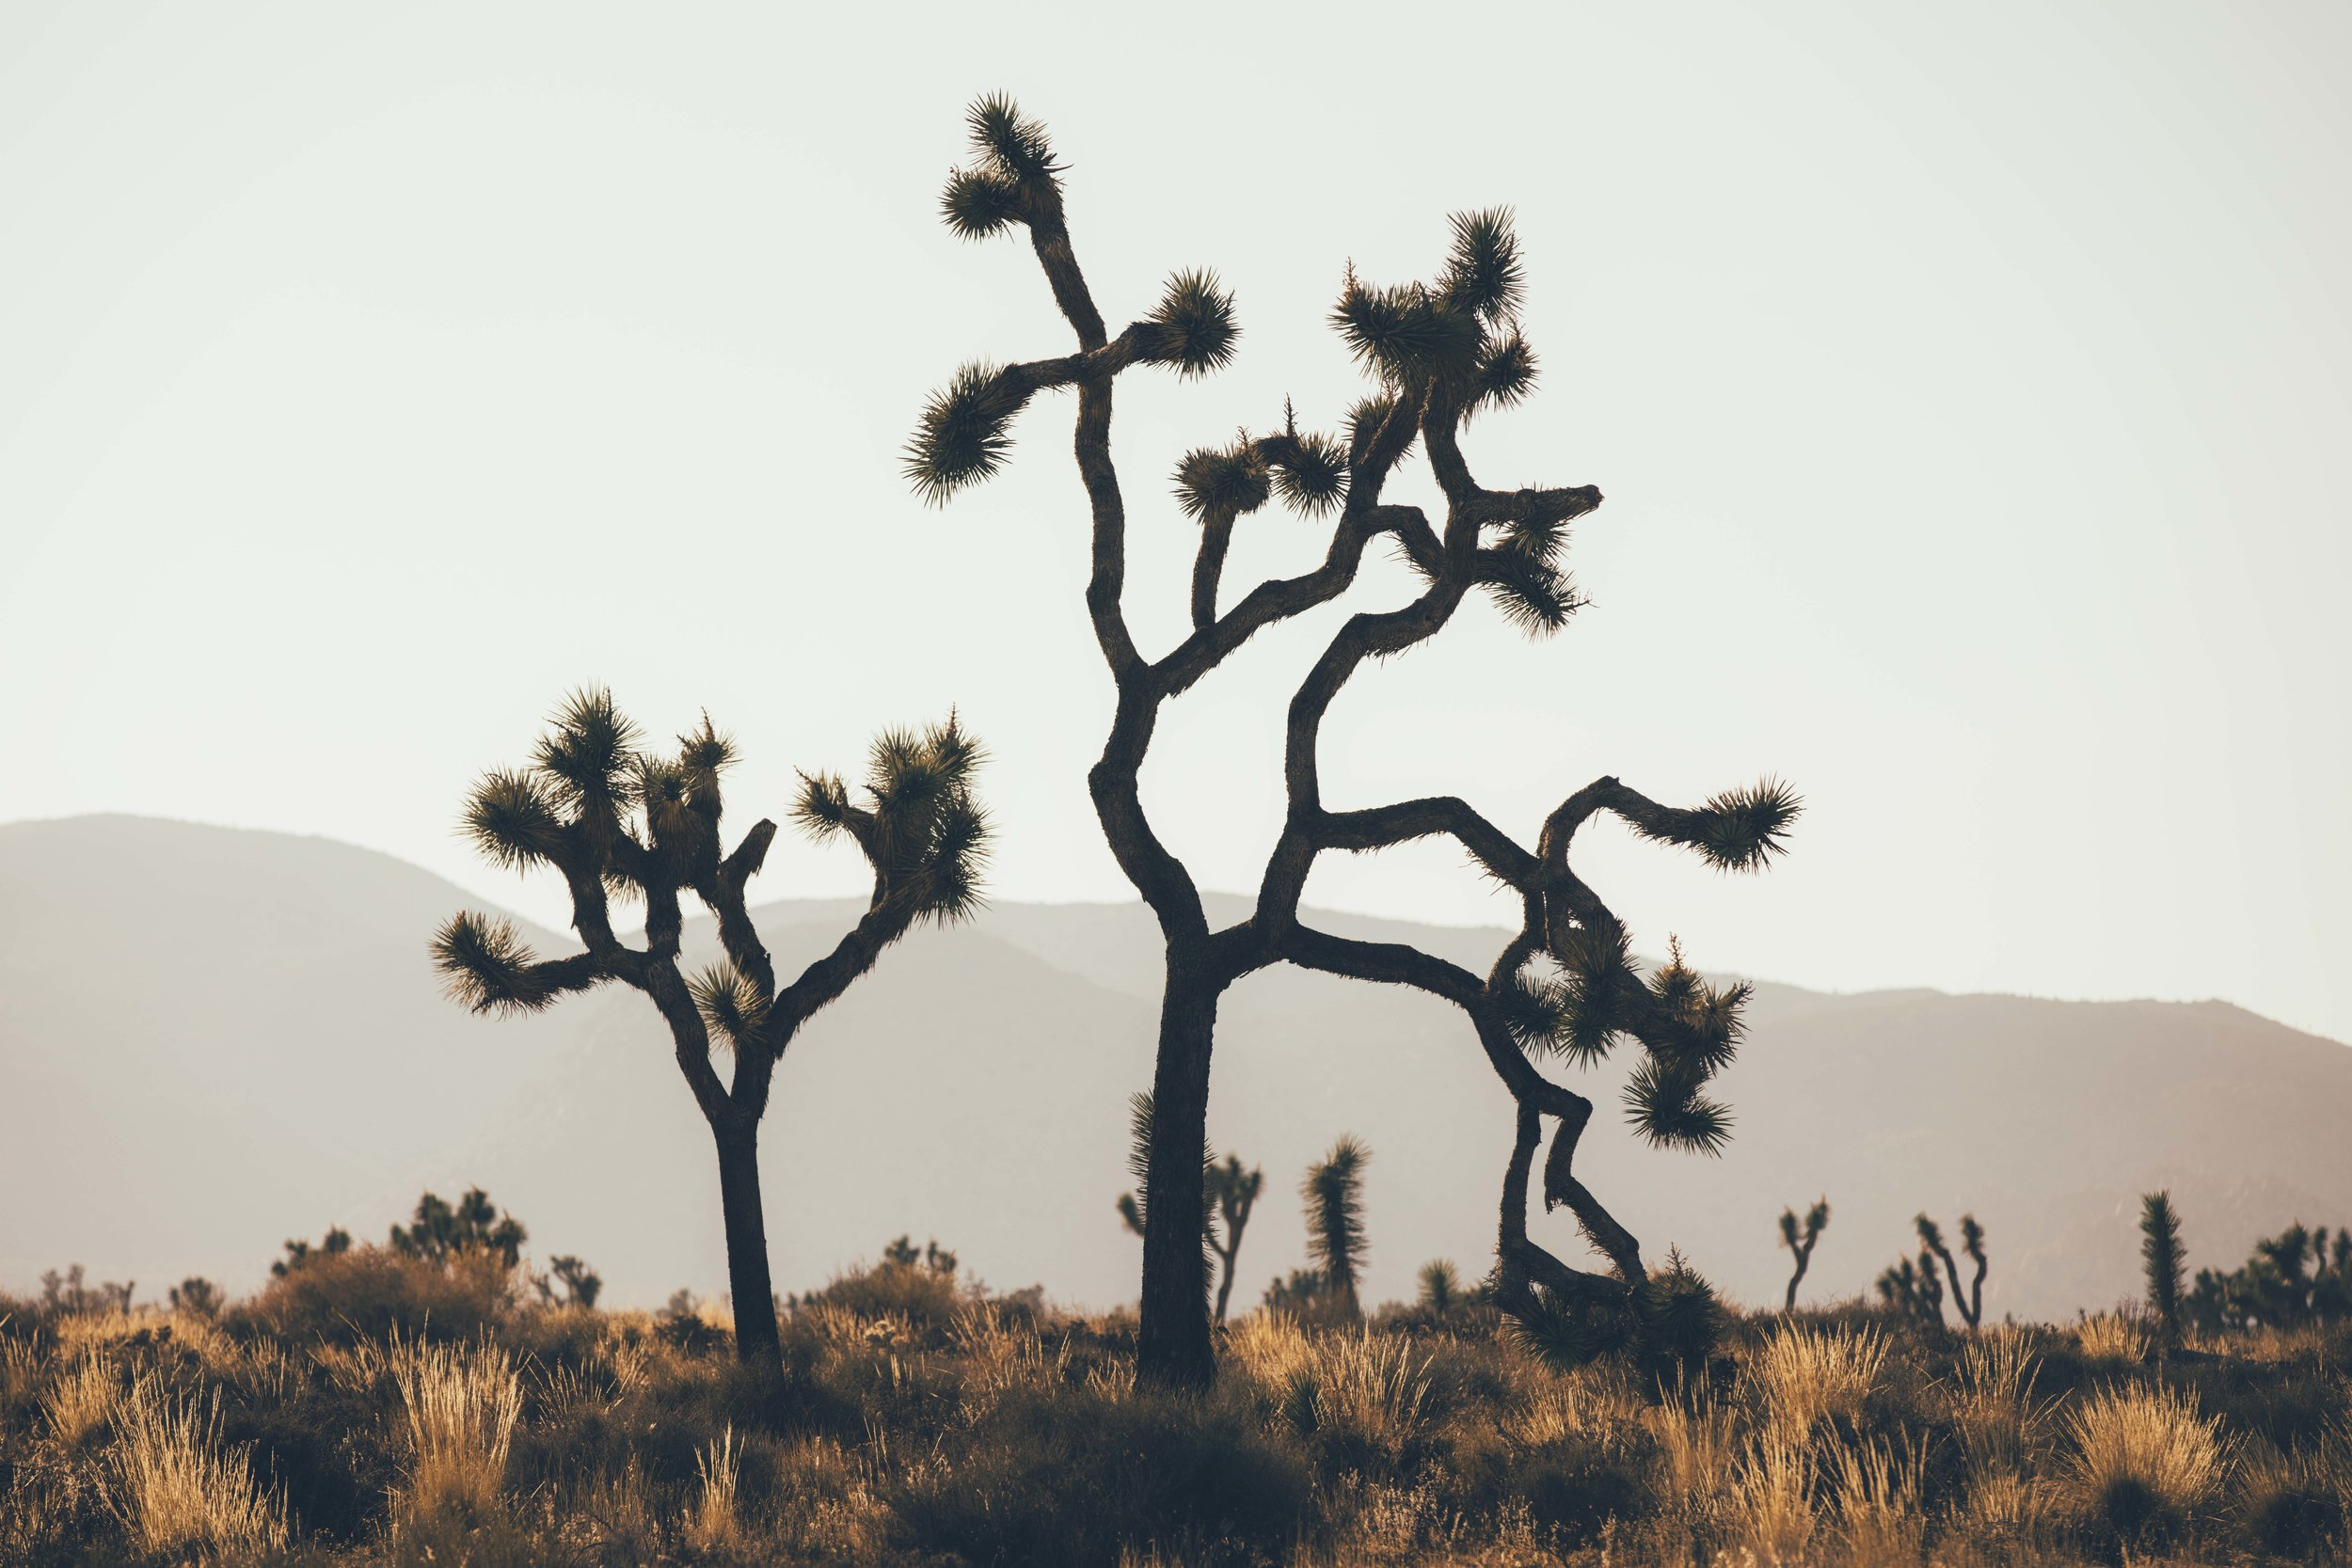 Joshua Tree James Glacier Photography 2018-4.jpg